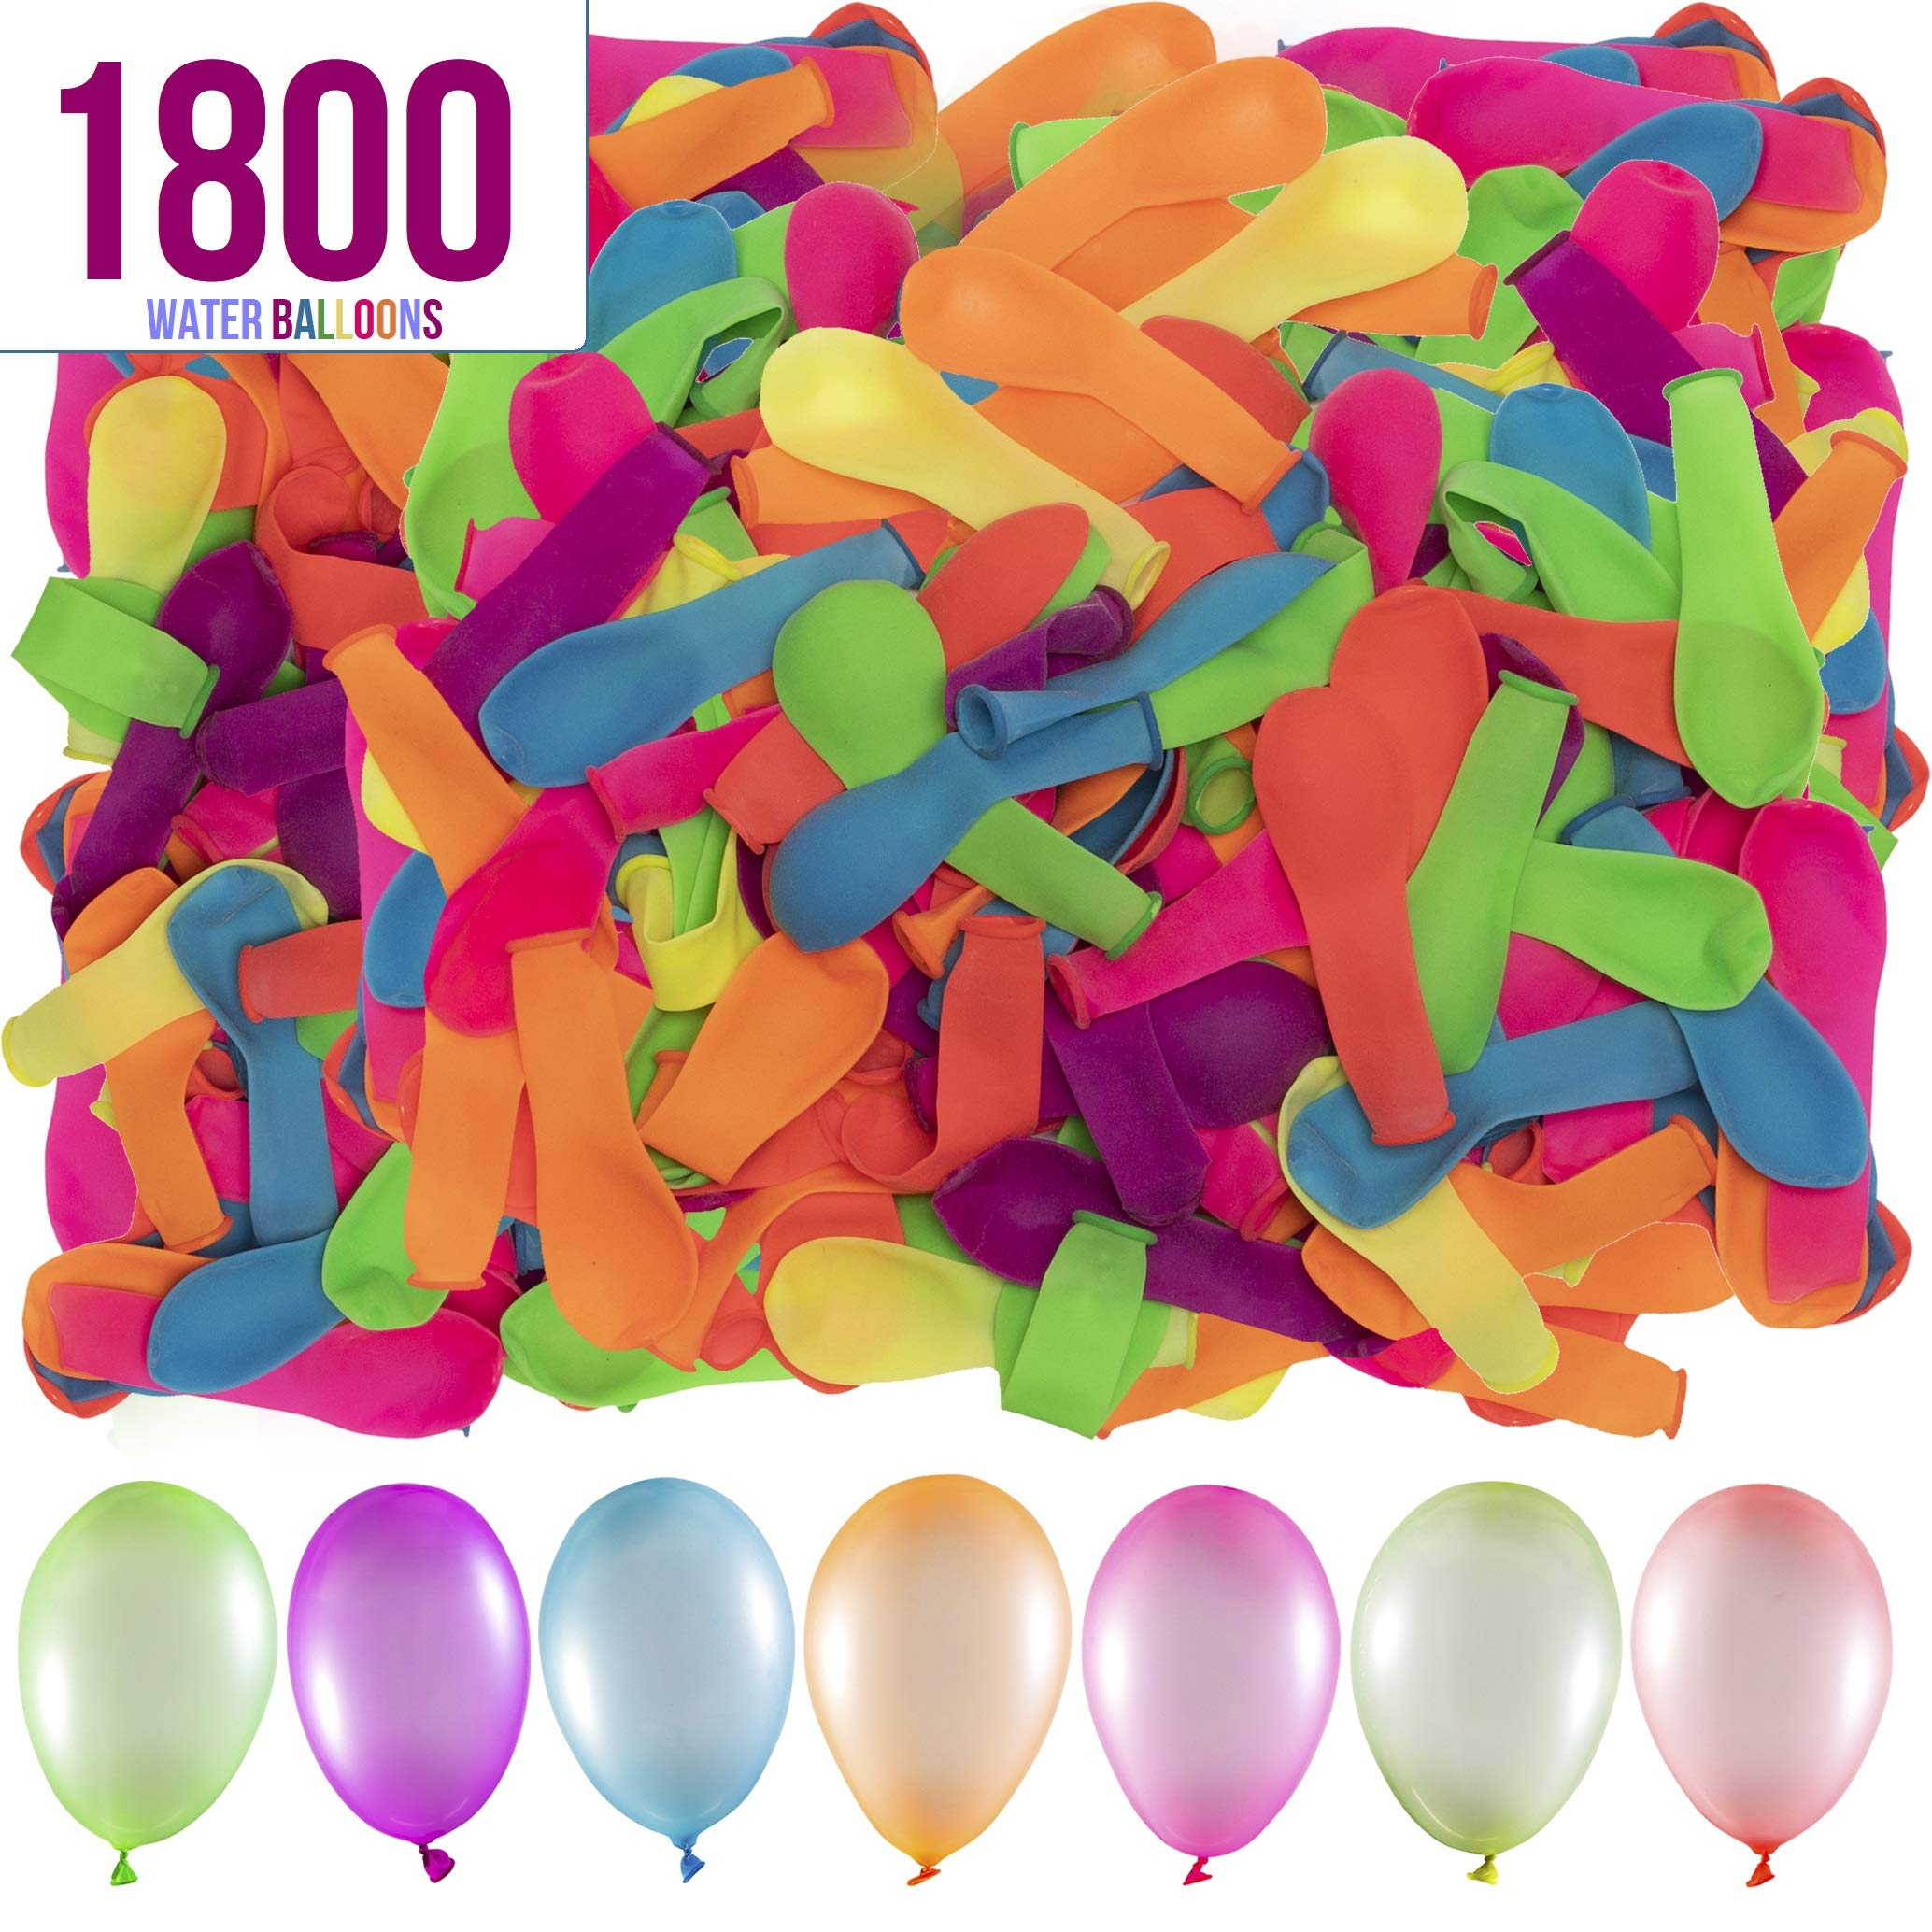 Prextex 1800 Water Balloons Bulk Balloons Pack for Water Sports Fun, Splash Fights for Pools and Outdoors, Summer Outdoor Water Games and Party Favors by Prextex